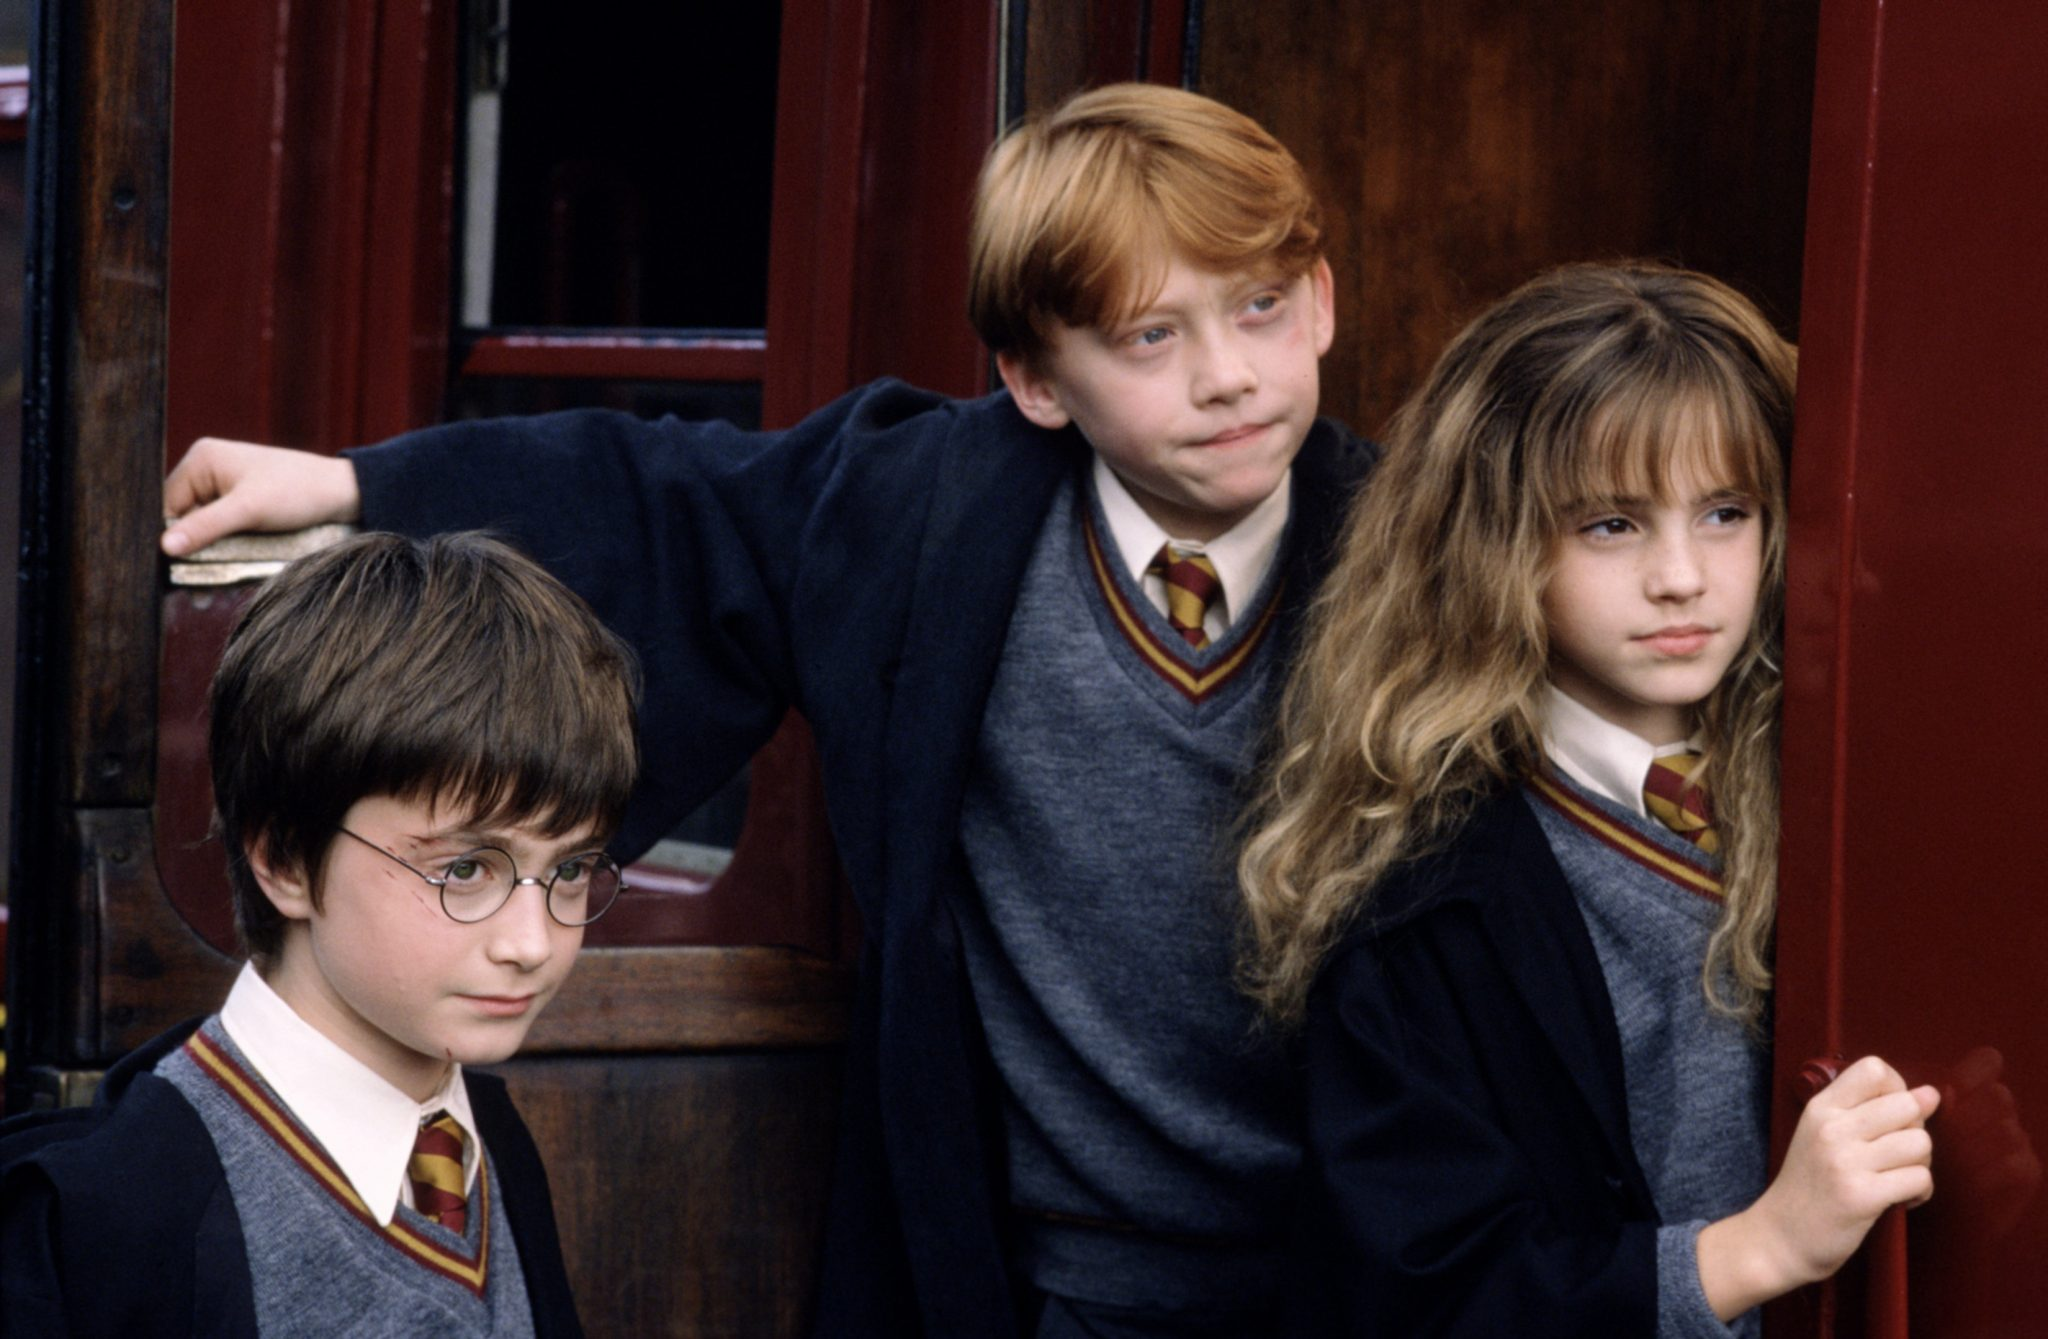 Harry Potter RPG to Be Revealed After DC FanDome